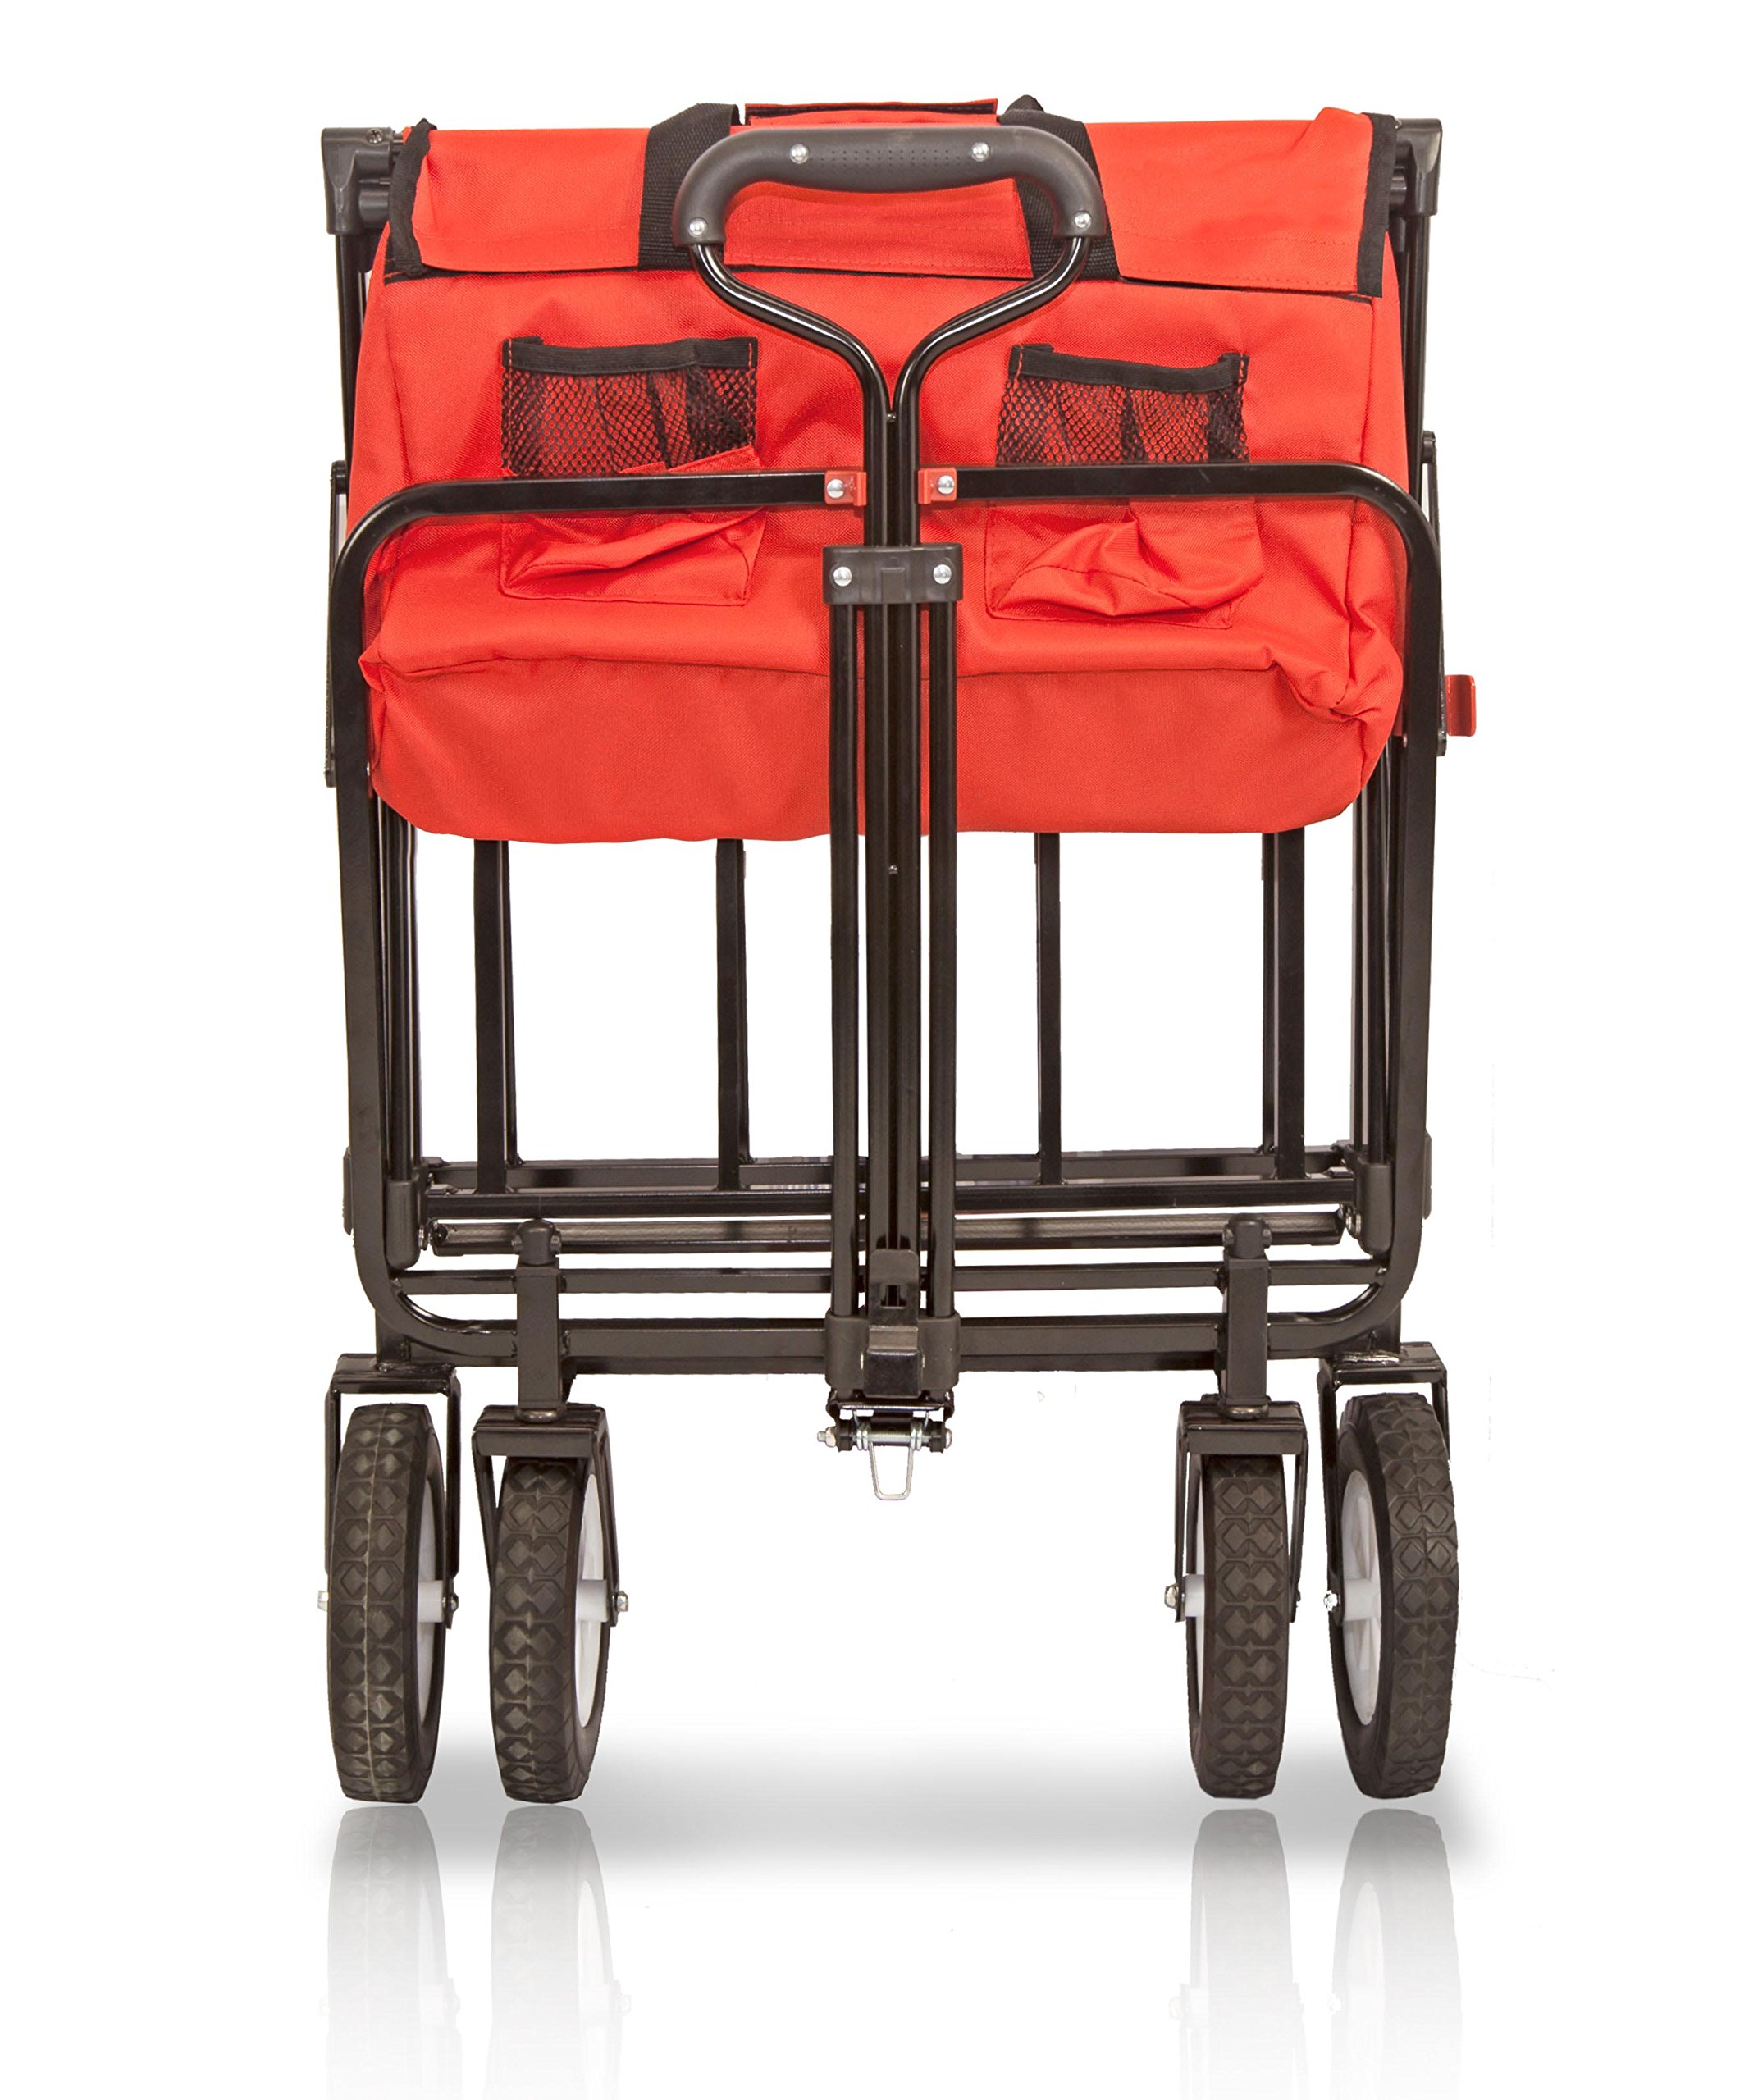 Wonder Fold Outdoor Next Generation Utility Folding Wagon with Removable Polyester Bag, Spring Bounce Feature, Auto Safety Locks, 180 Degree Steering Telescoping Handle Performance, Scarlet Red by WonderFold Outdoor (Image #5)